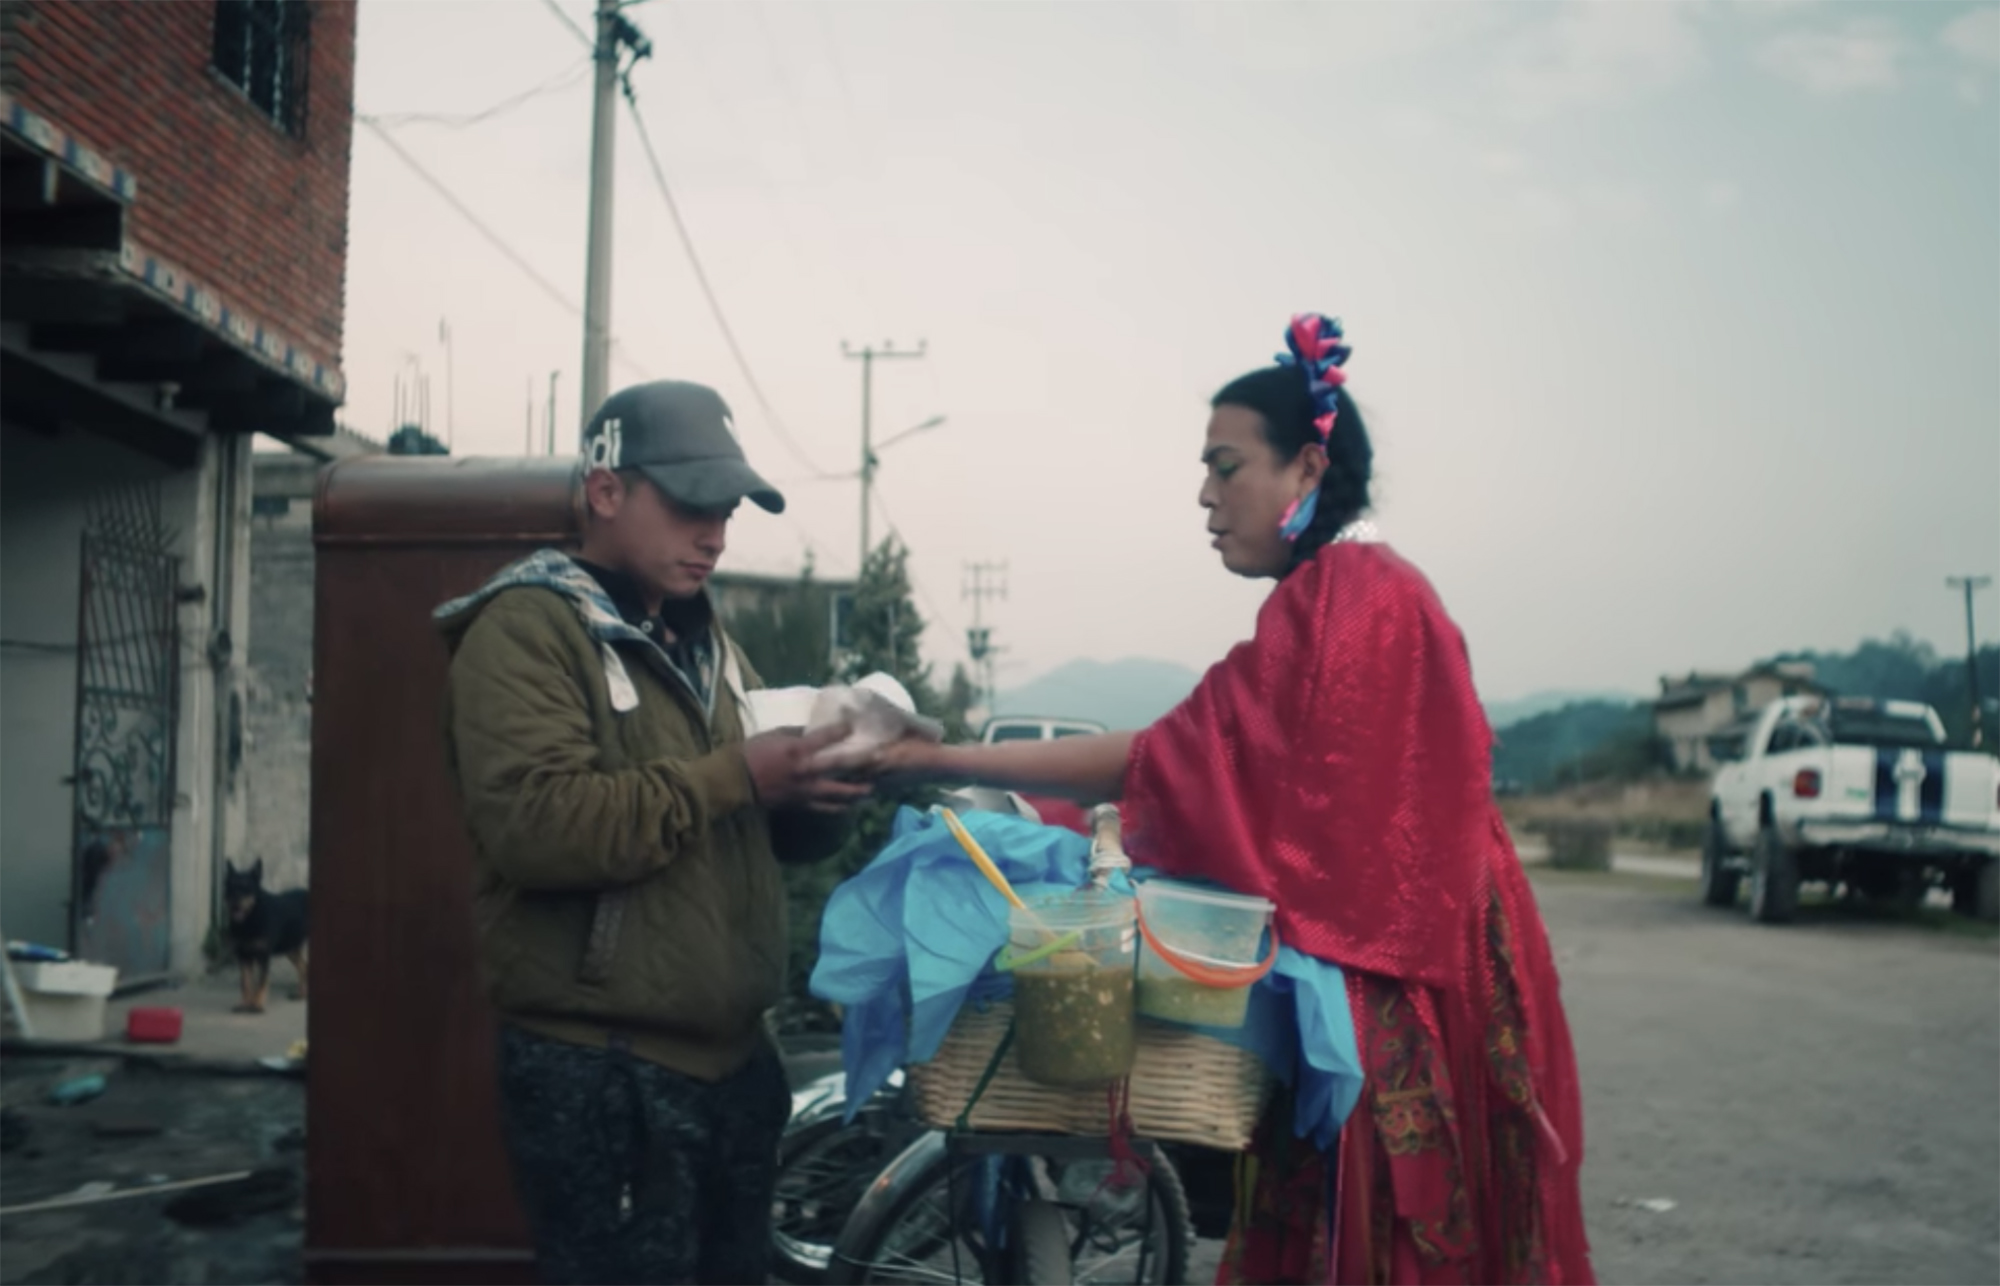 """The Mexico City street vendor Marven, who's also known as """"the basket taco lady,"""" plying her trade on Netflix's """"Taco Chronicles."""""""